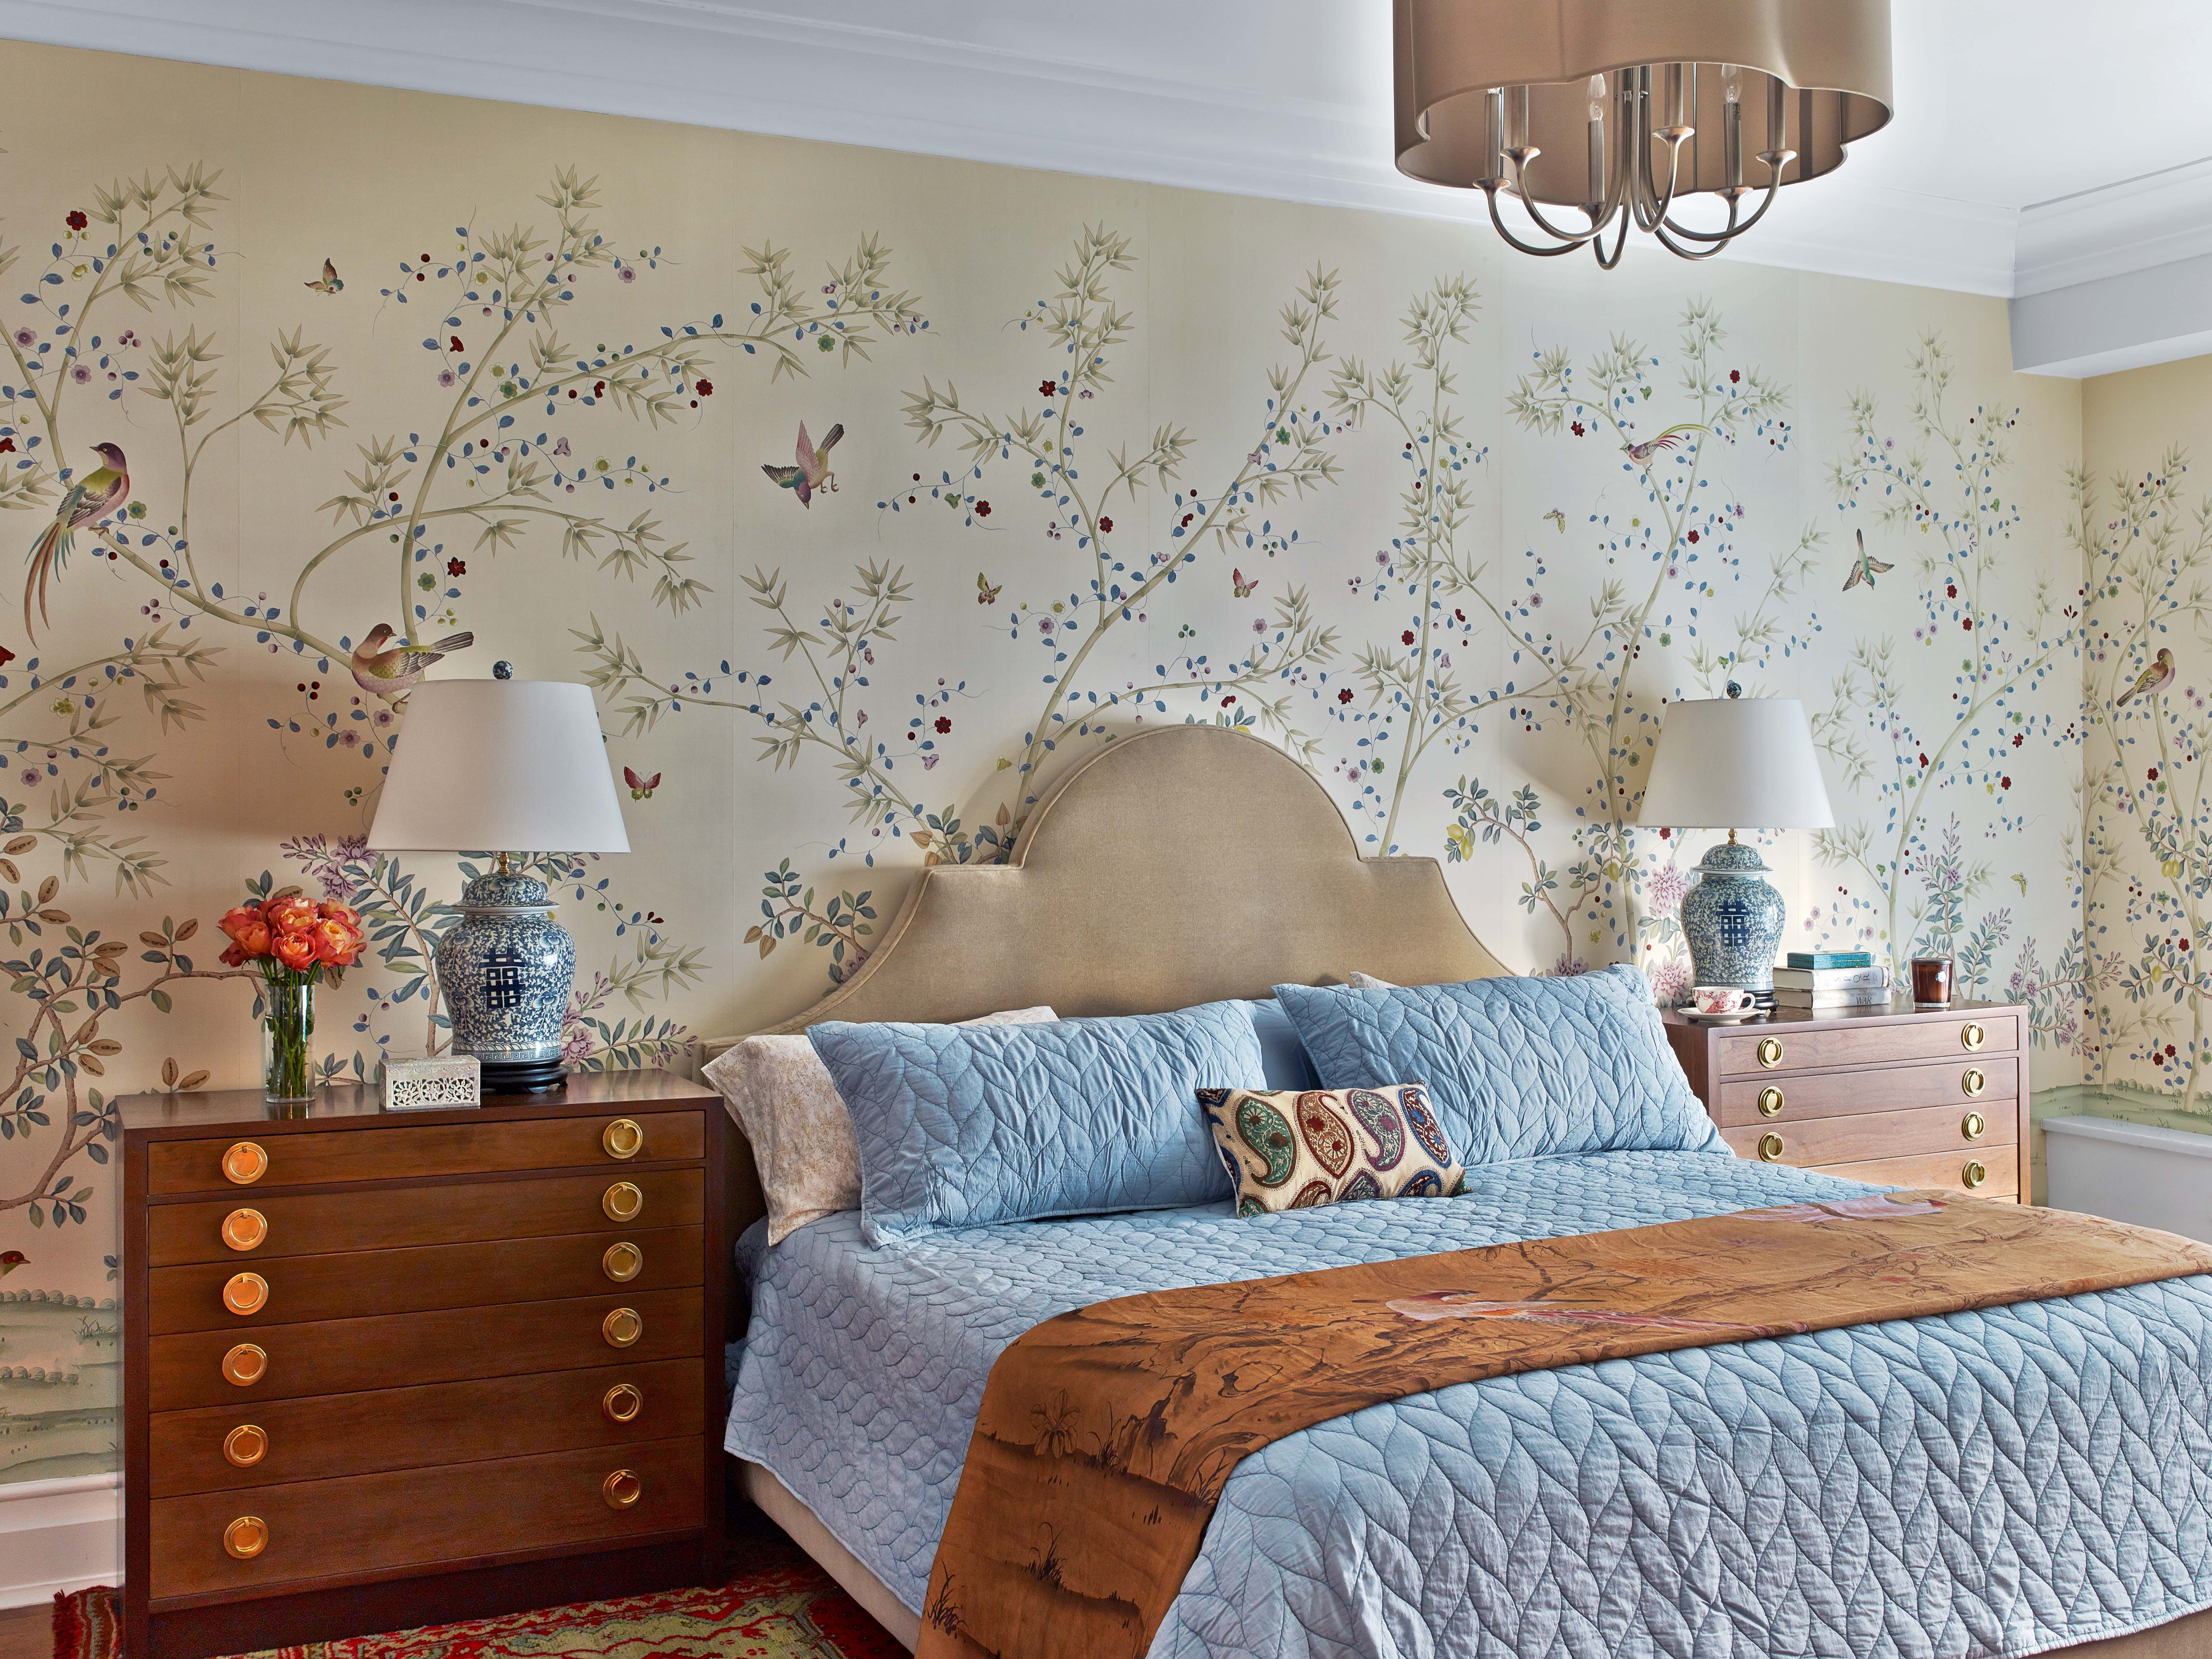 Which wall-paper to choose in the house